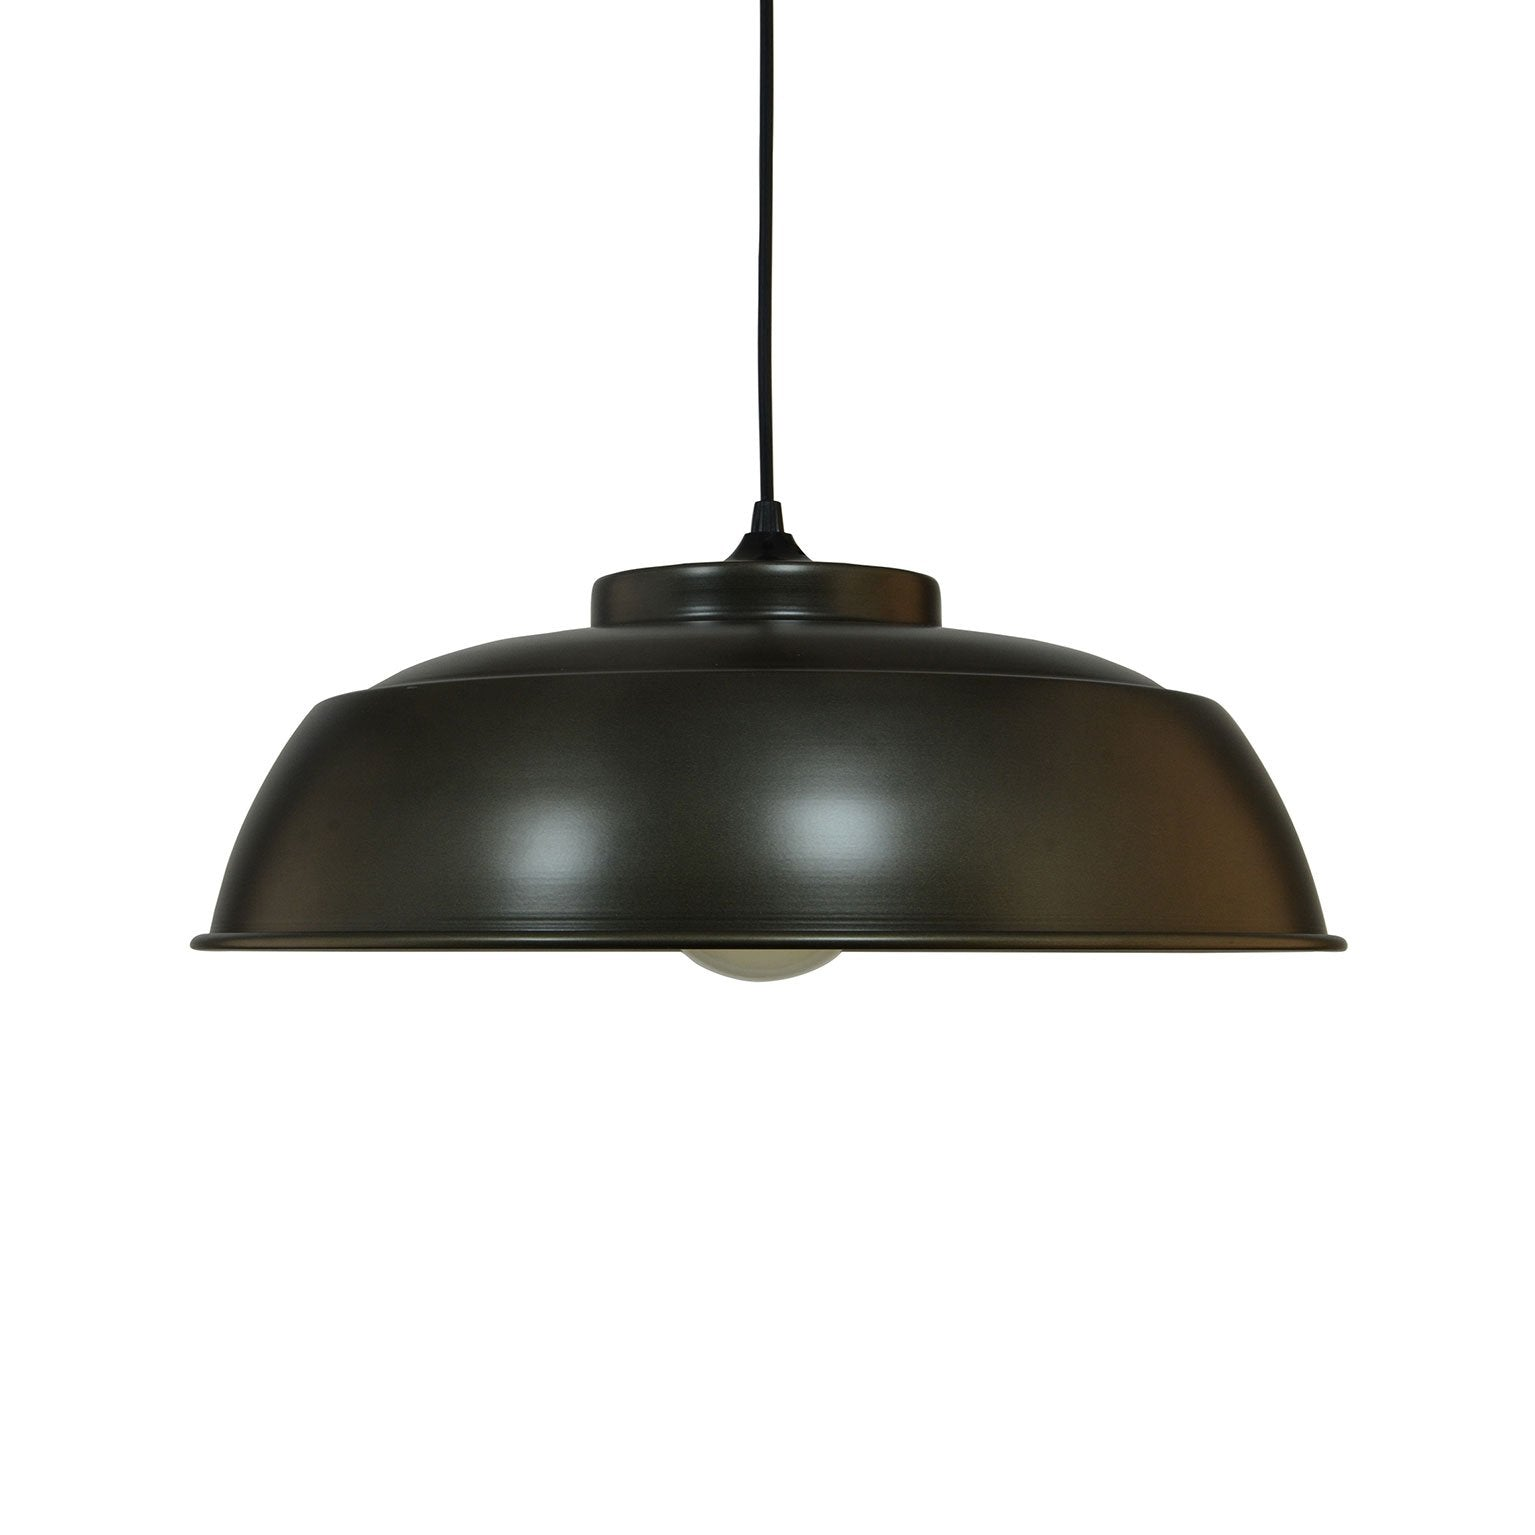 belle suspension basique gris anthracite